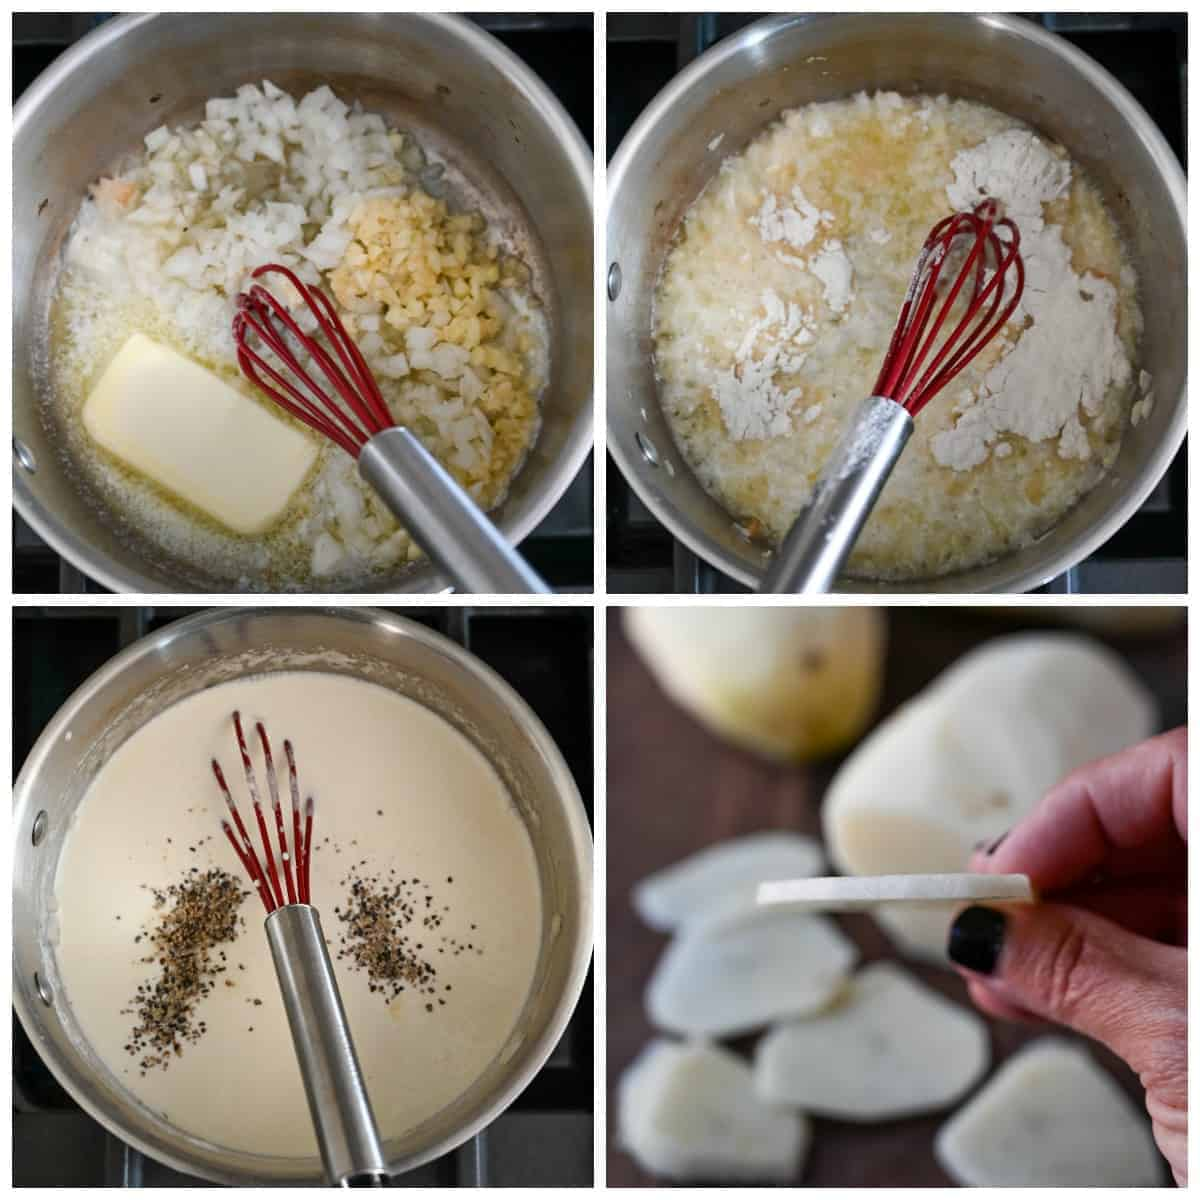 Four process photos. First one, butter, onions, and garlic in a saucepan with a whisk. Second one, all purpose flour added in. Third one, cream, salt and pepper whicked in. Fourth one, potatoes that have been sliced to a 1/8 inch thickness up and one slice being help up.